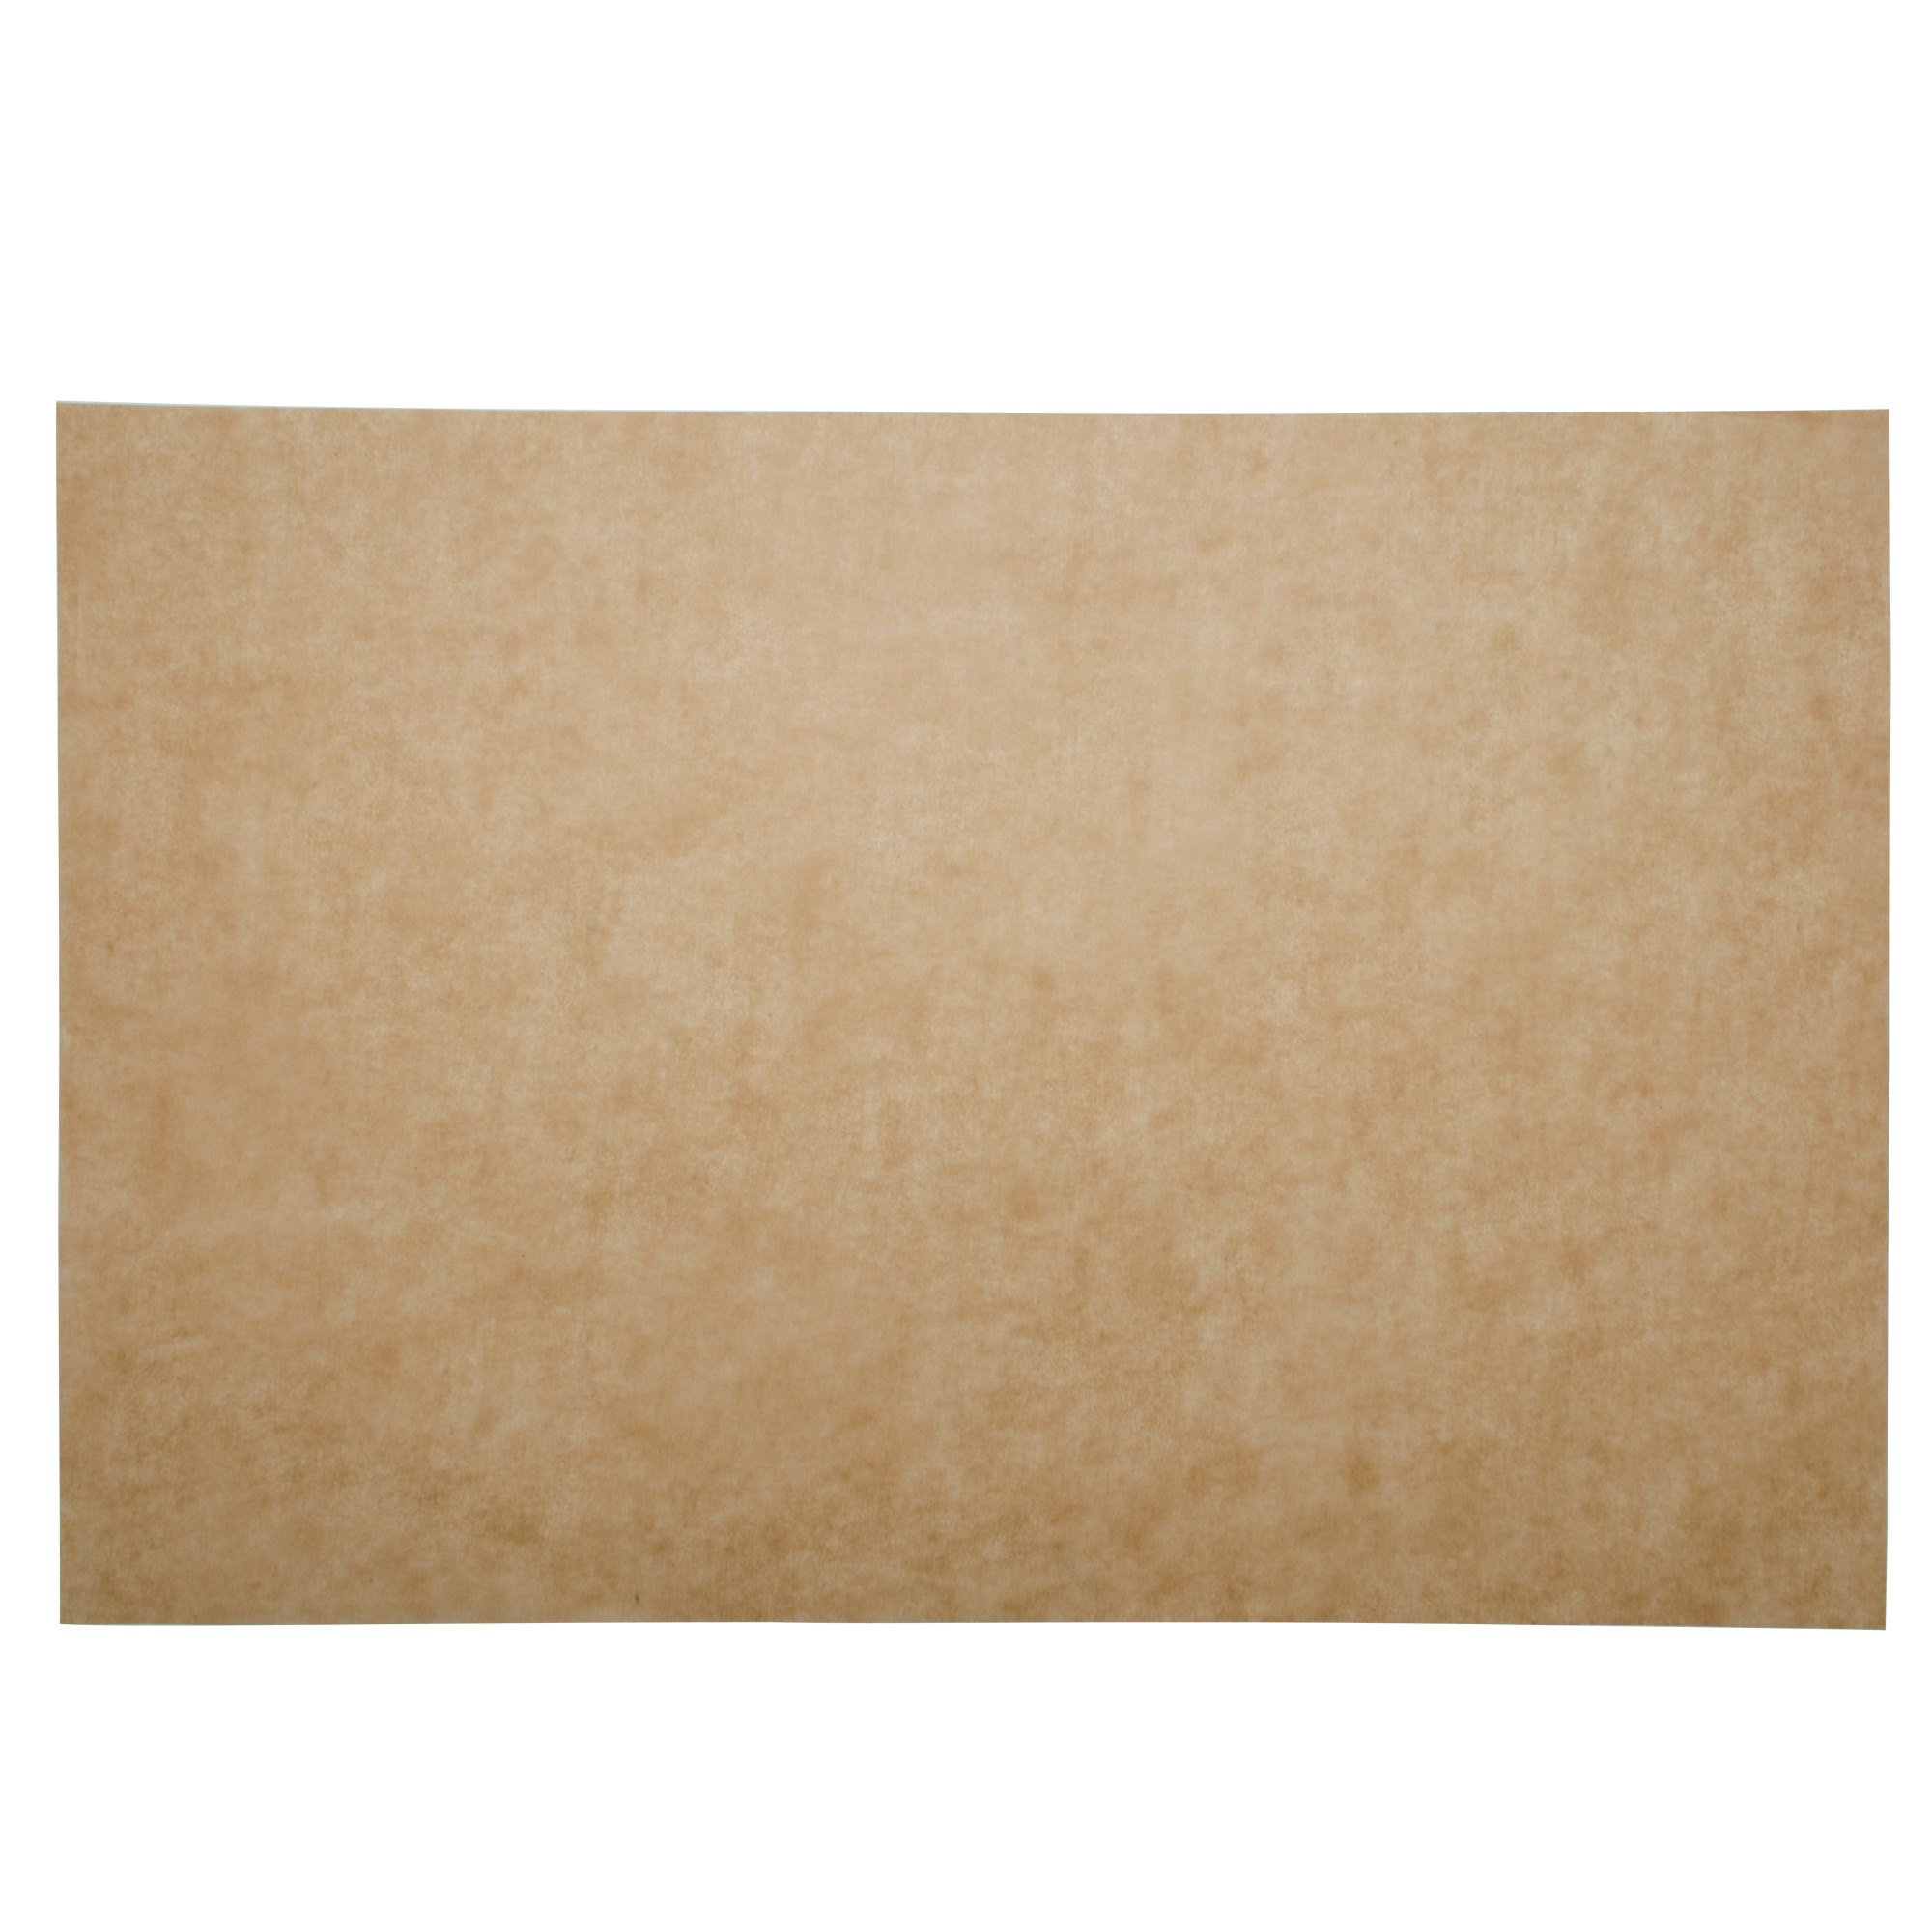 Bagcraft Papercon 030010 EcoCraft Bake 'N' Reuse 16'' x 24'' Full Size Parchment Paper Pan Liner - 1000/Case